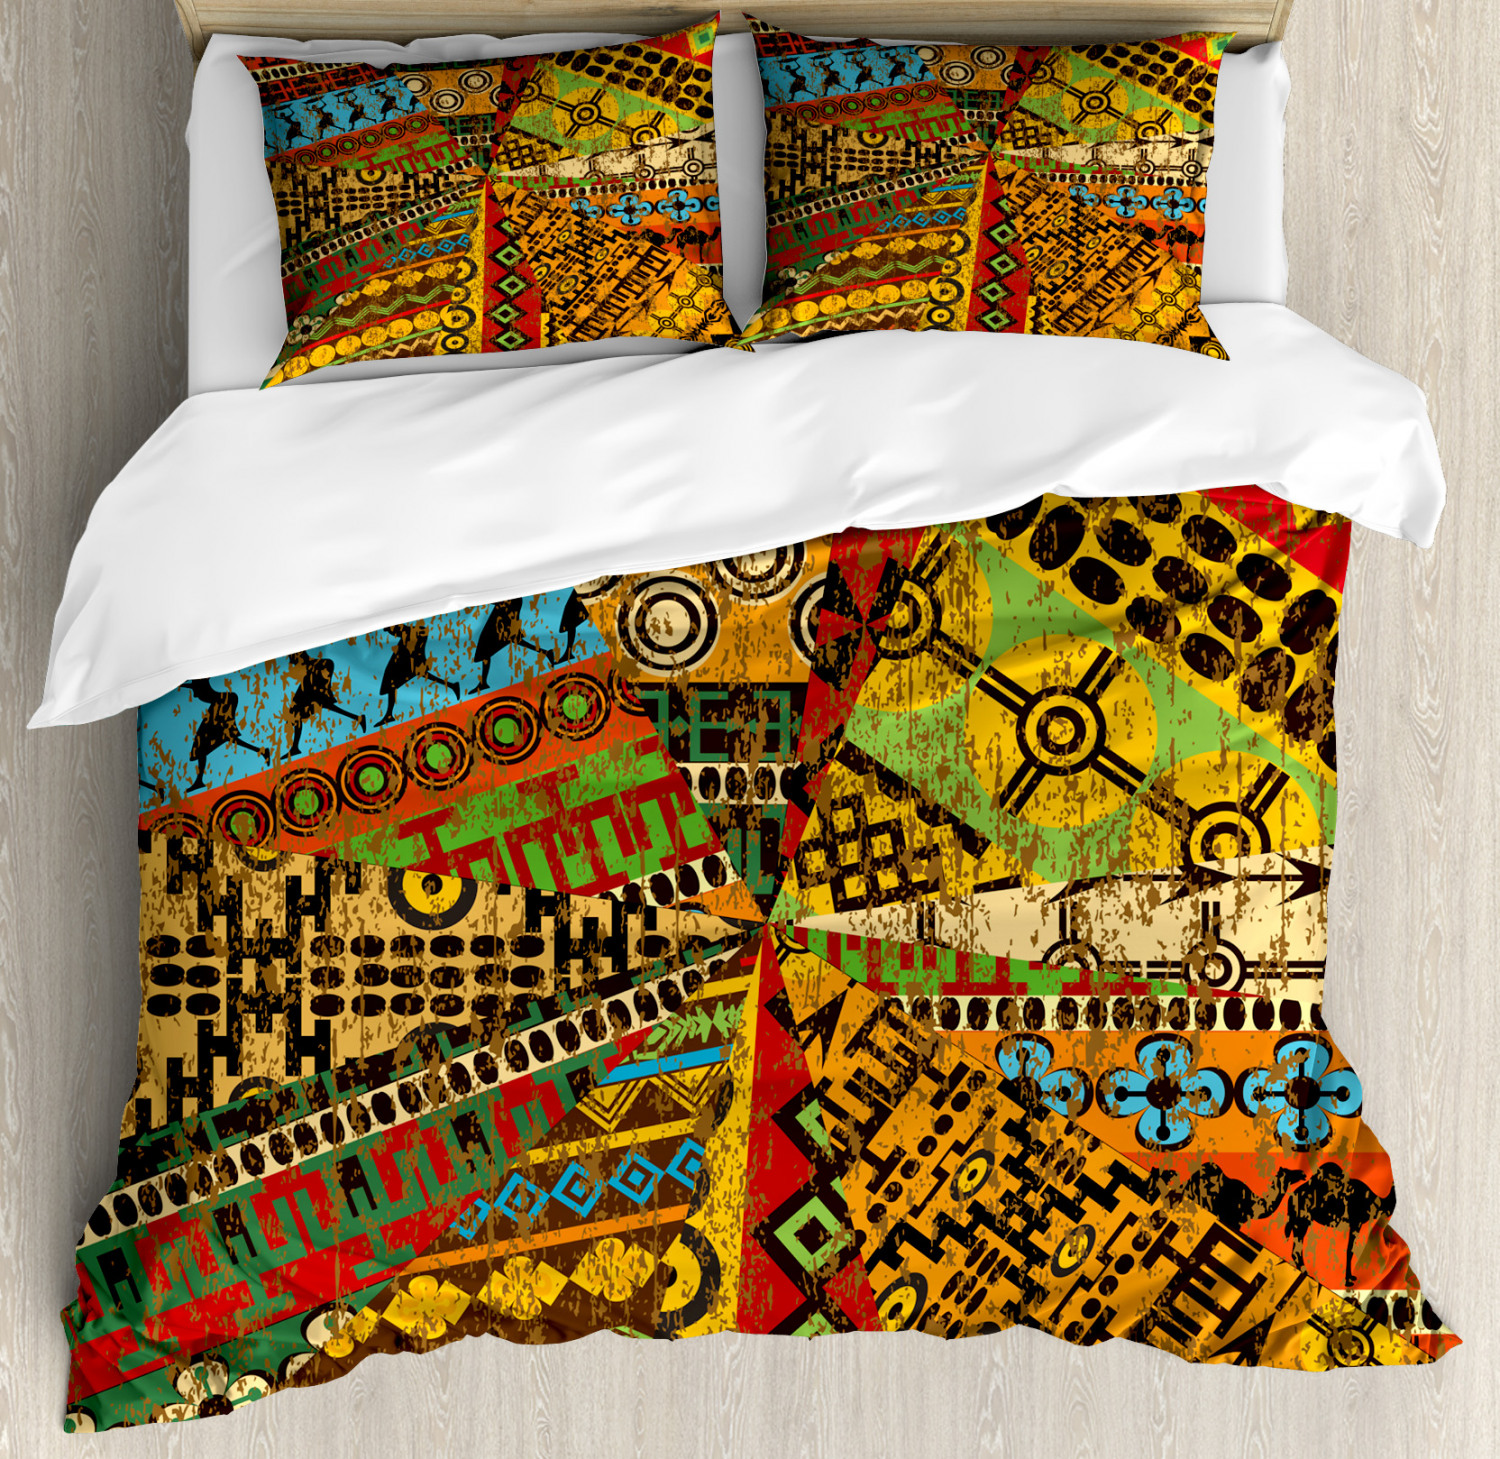 African Duvet Cover Set with Pillow Shams Grunge Ethnic Moti